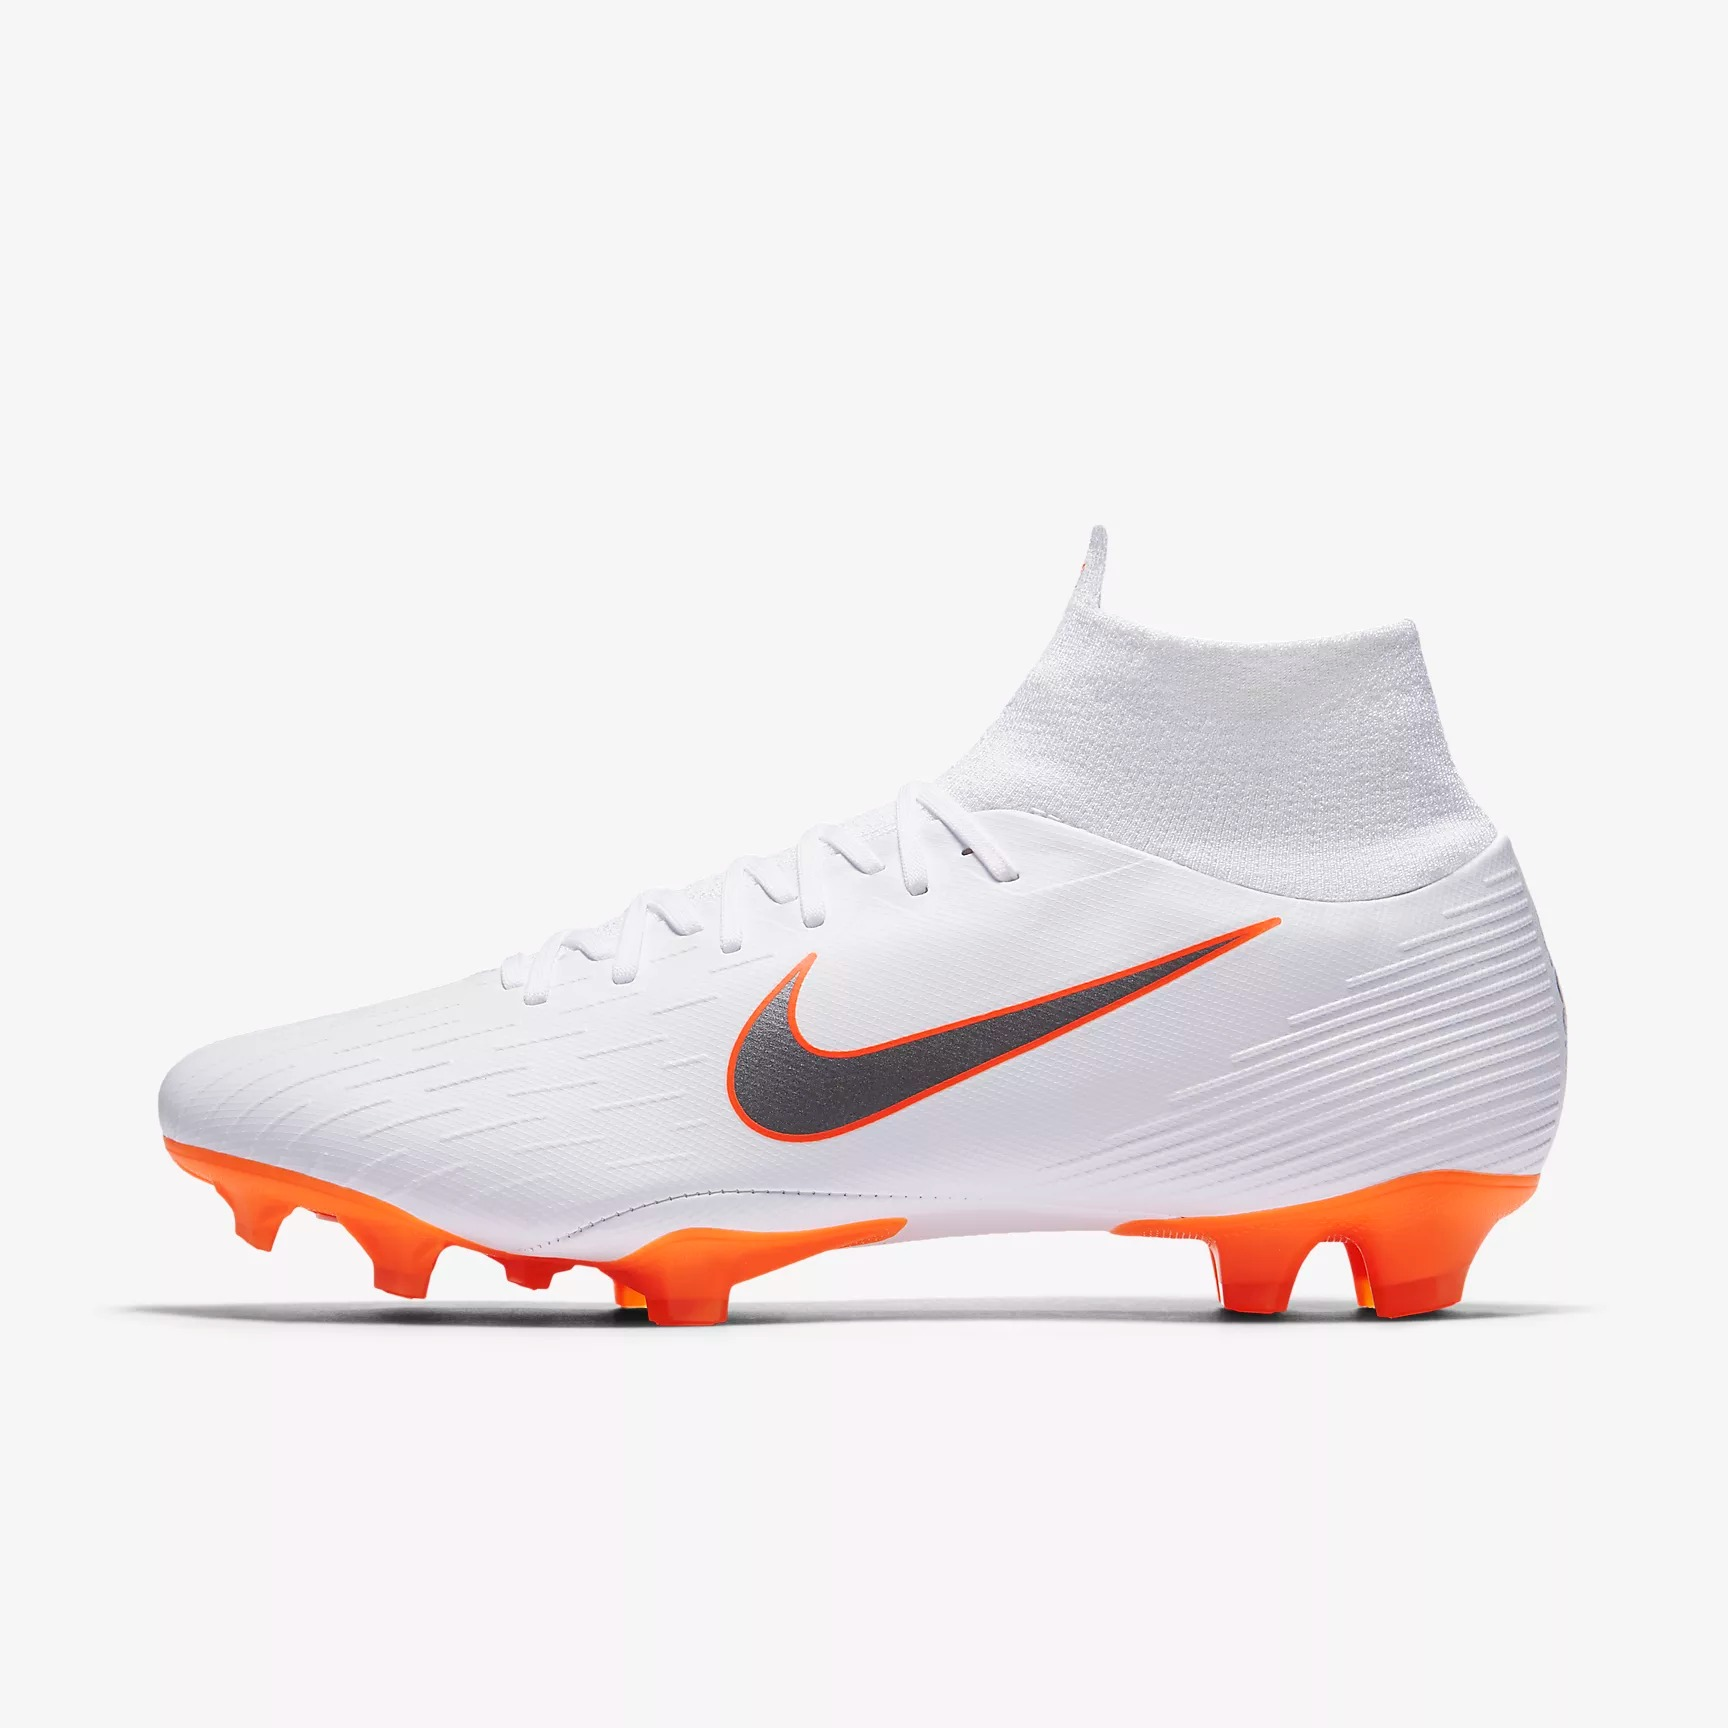 Nike Mercurial Superfly VI Pro FG Soccer Cleats - Soccer Cleats Nike ... 43fb4623e